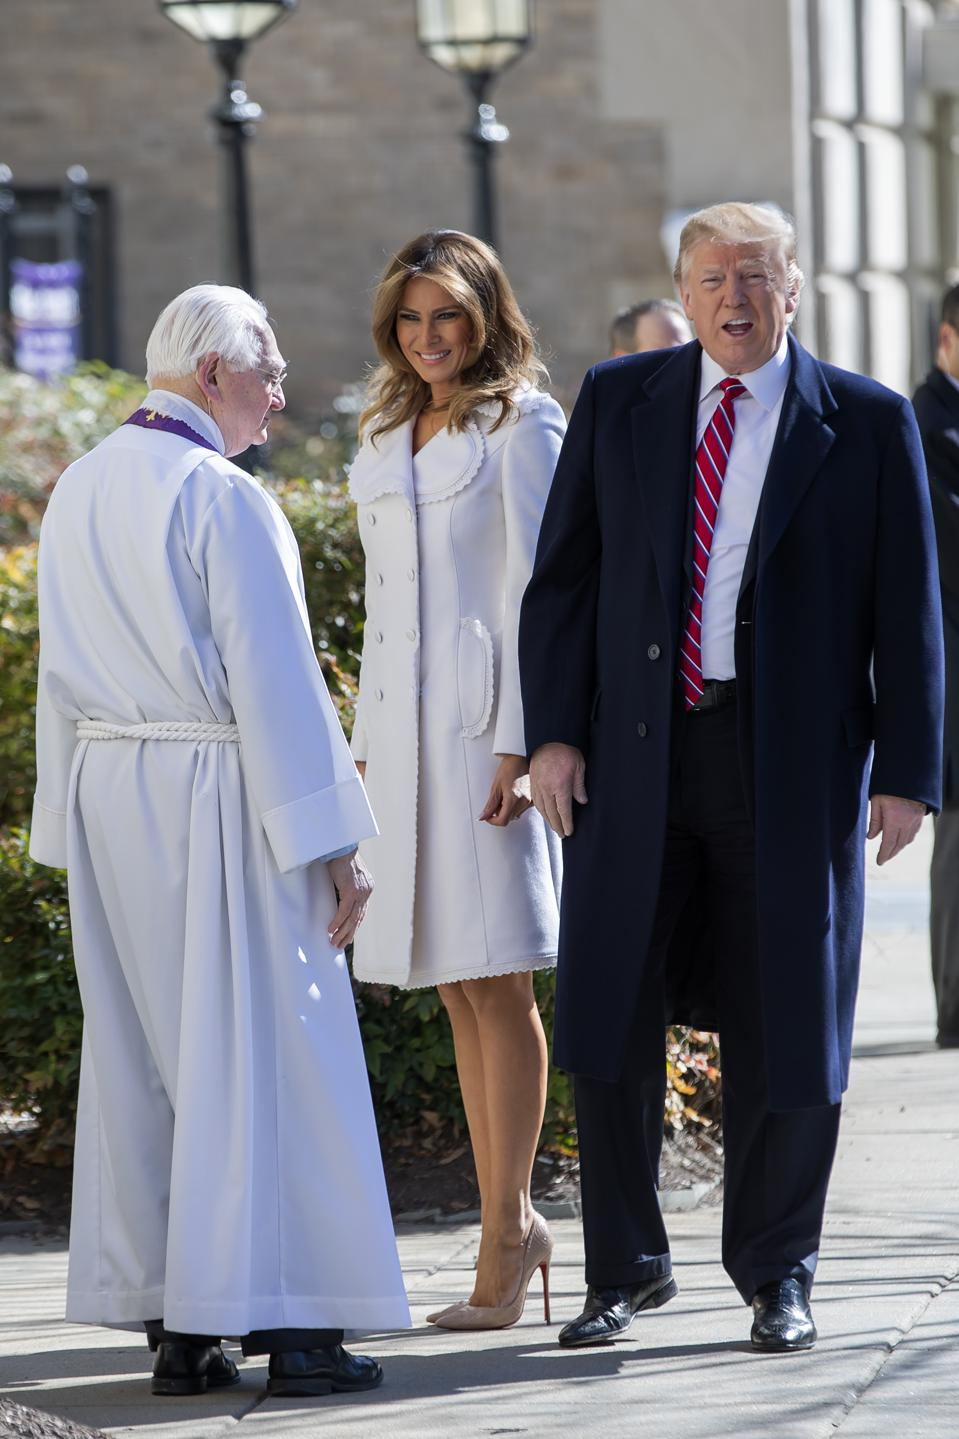 President Trump Attends Church Services on St. Patrick's Day